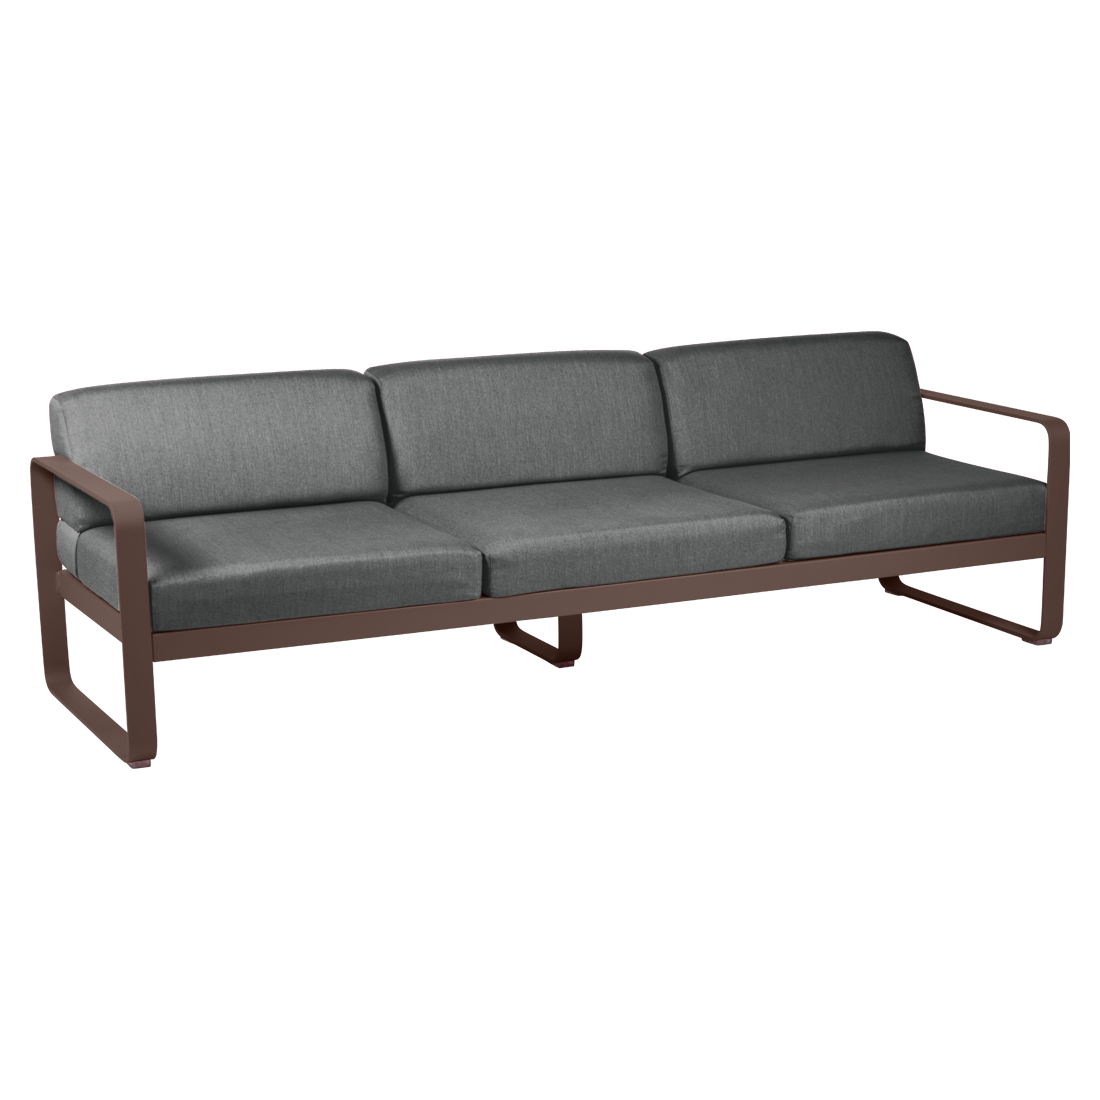 FERMOB Bellevie 3-Seater Outdoor Sofa with Graphite Cushions